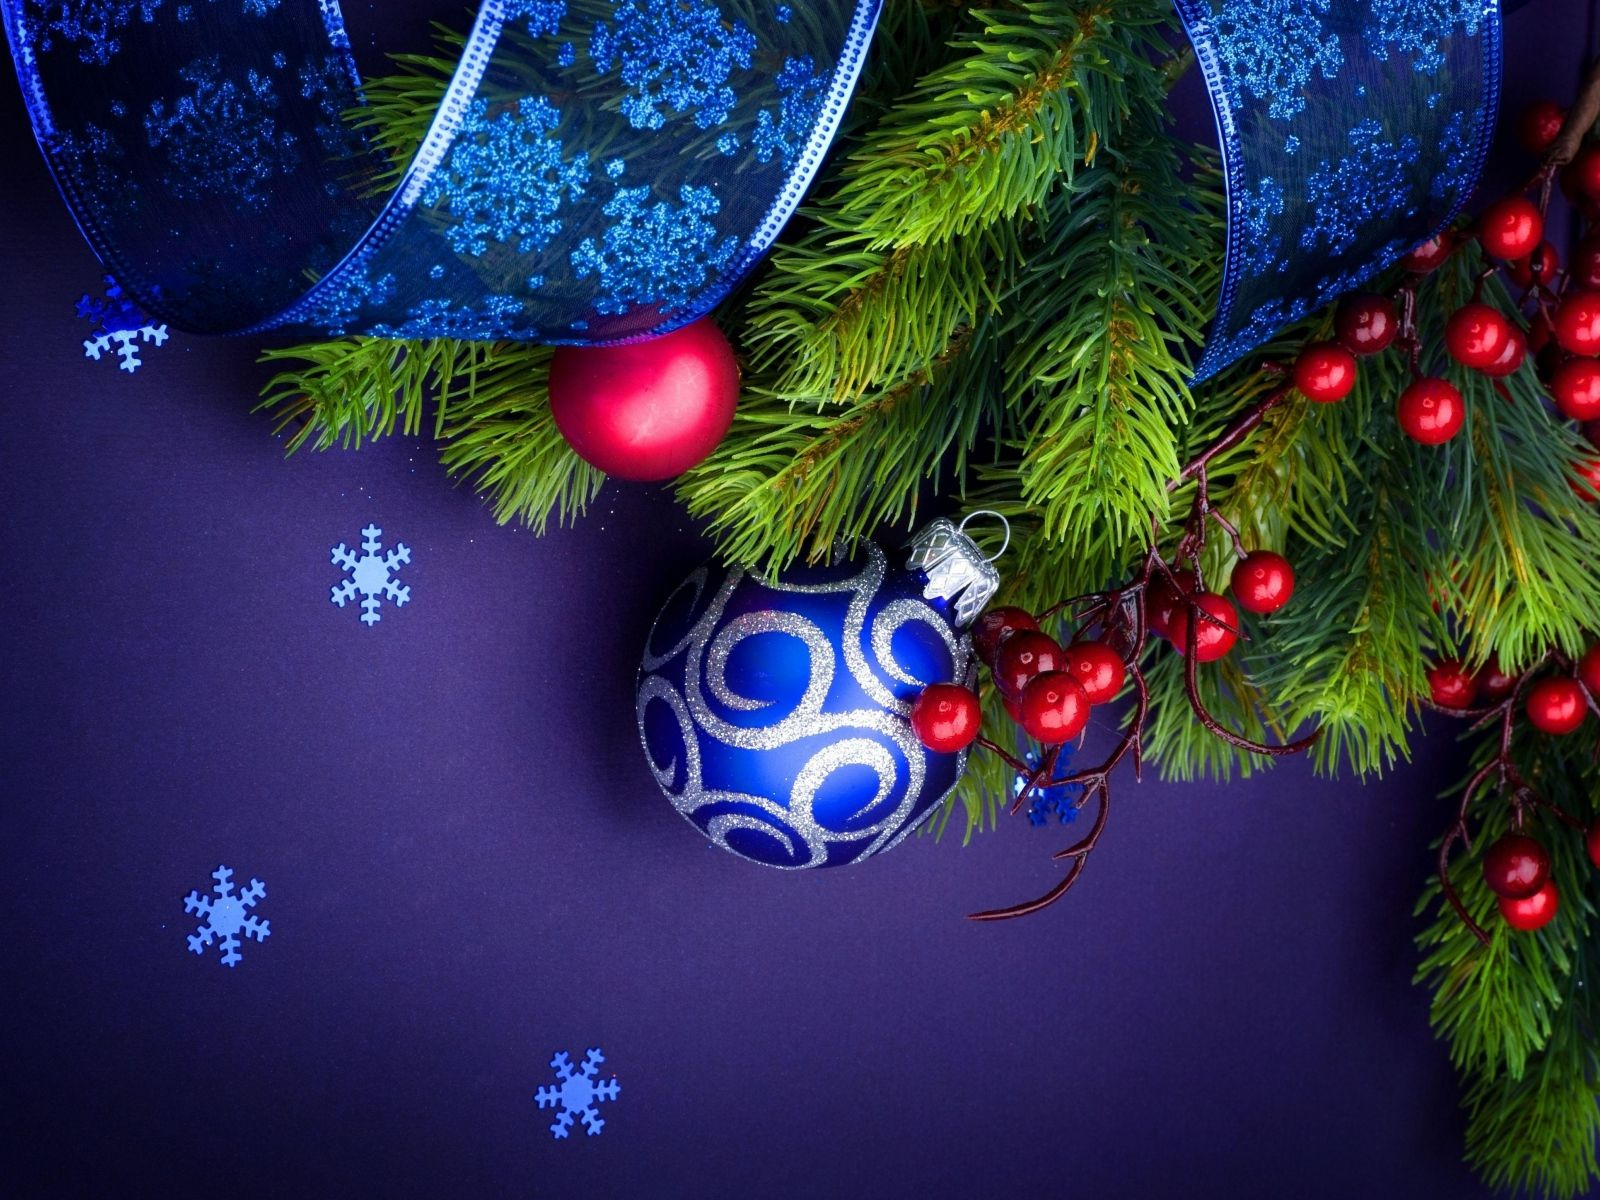 Download wallpaper 1600x1200 needles, thread, christmas decorations, snowflakes, ribbon, new year, christmas standard 4:3 hd background